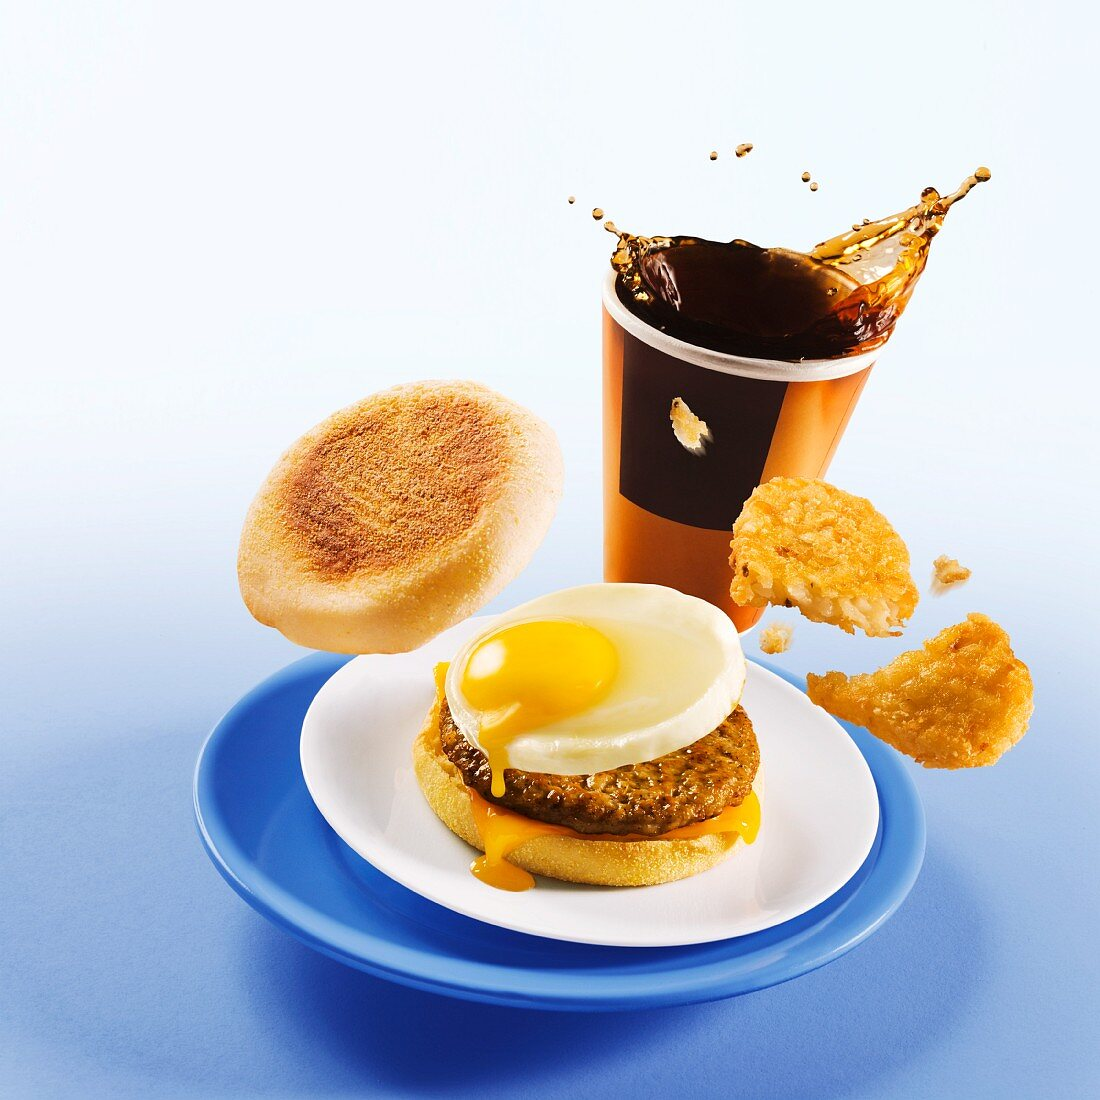 Breakfast Sandwich with Hash Brown and Coffee; Spilling